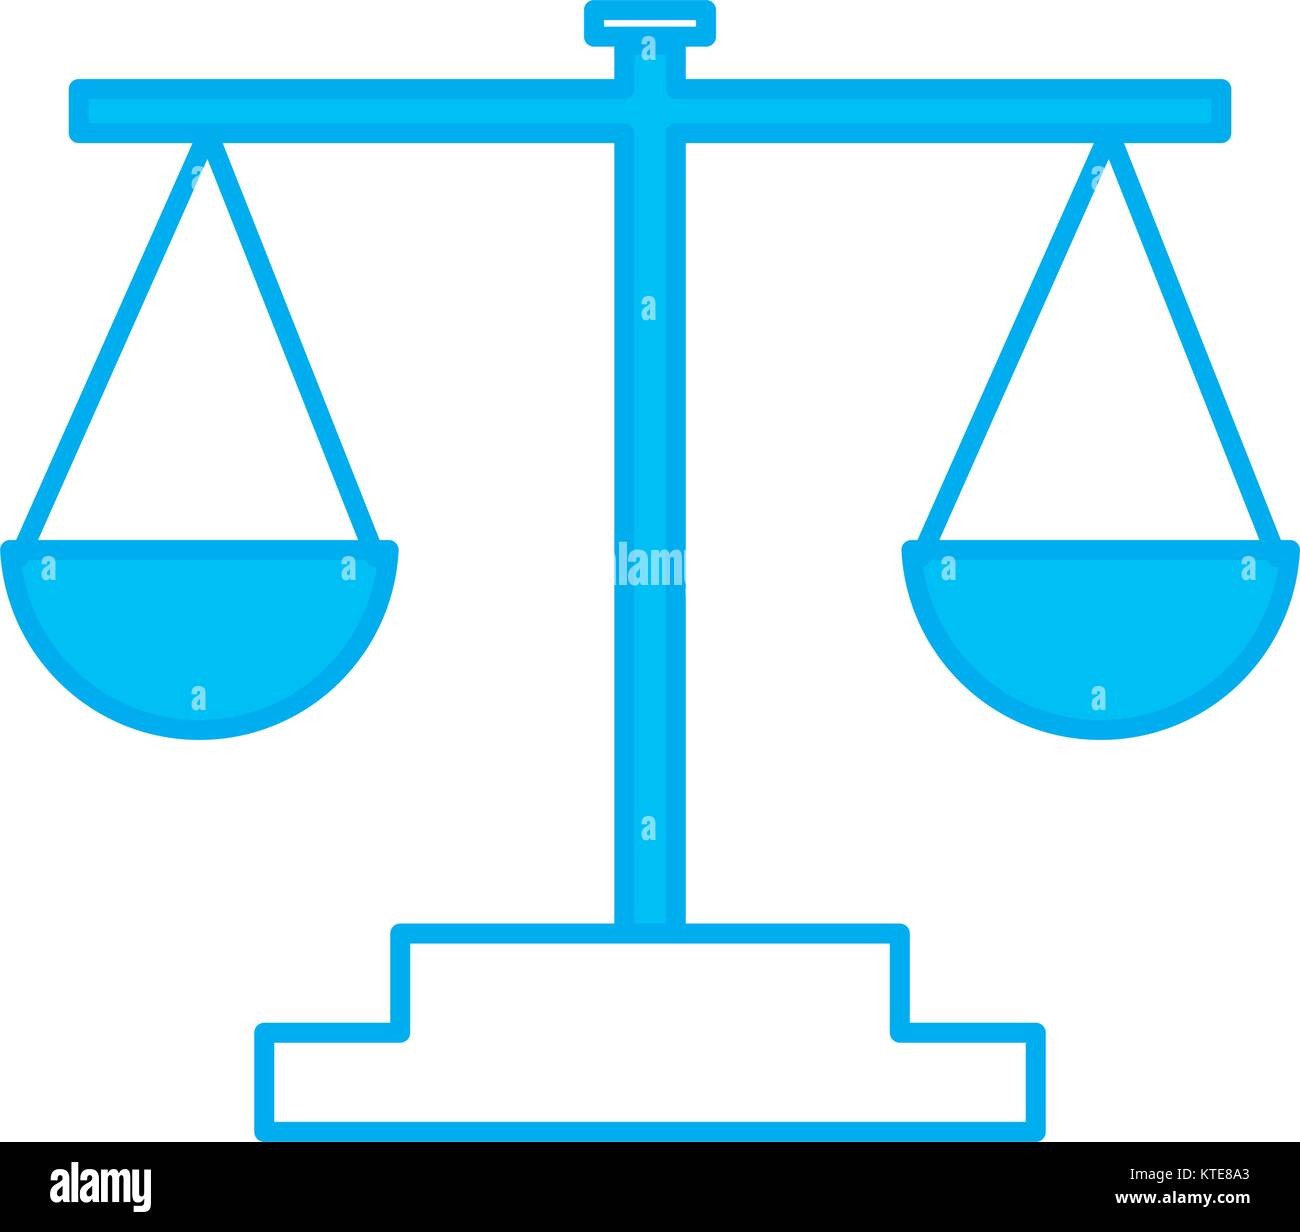 balance in the administration of justice The fy 2017 request also addresses increasing workload in the core missions of the department of justice, such  balance rescissions:  general administration .